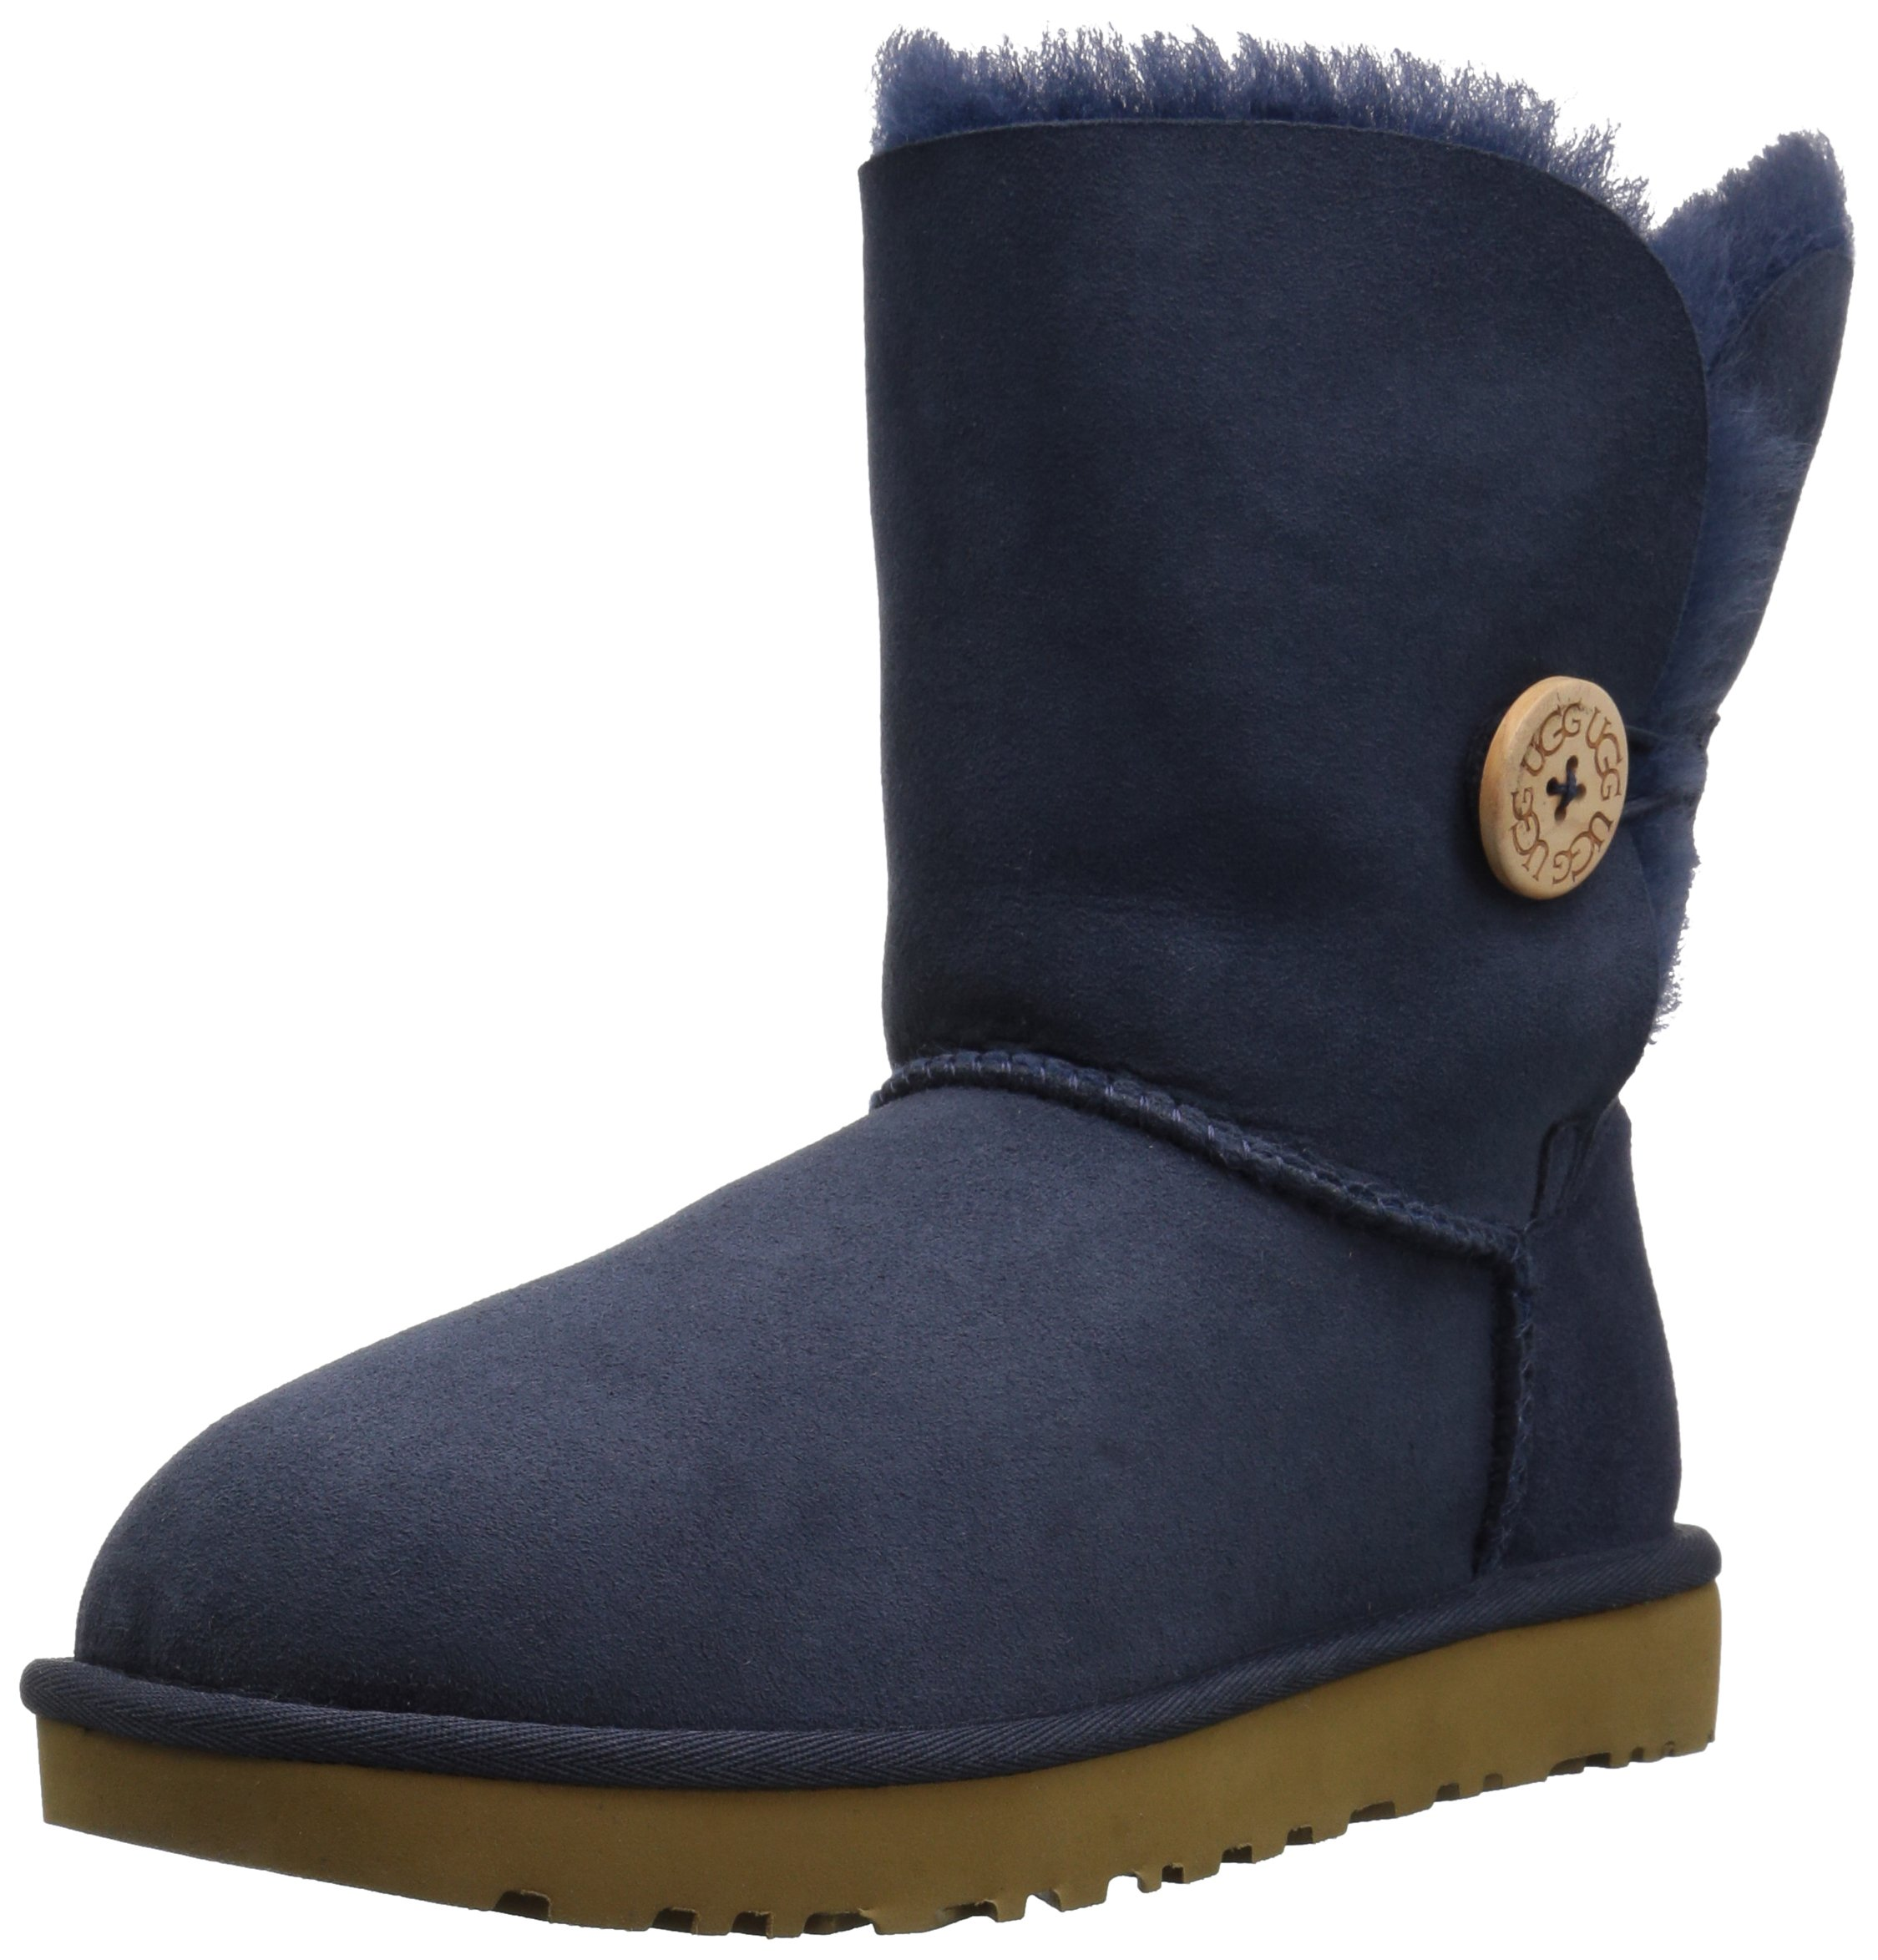 UGG Women's Bailey Button II Winter Boot, Navy, 5 M US